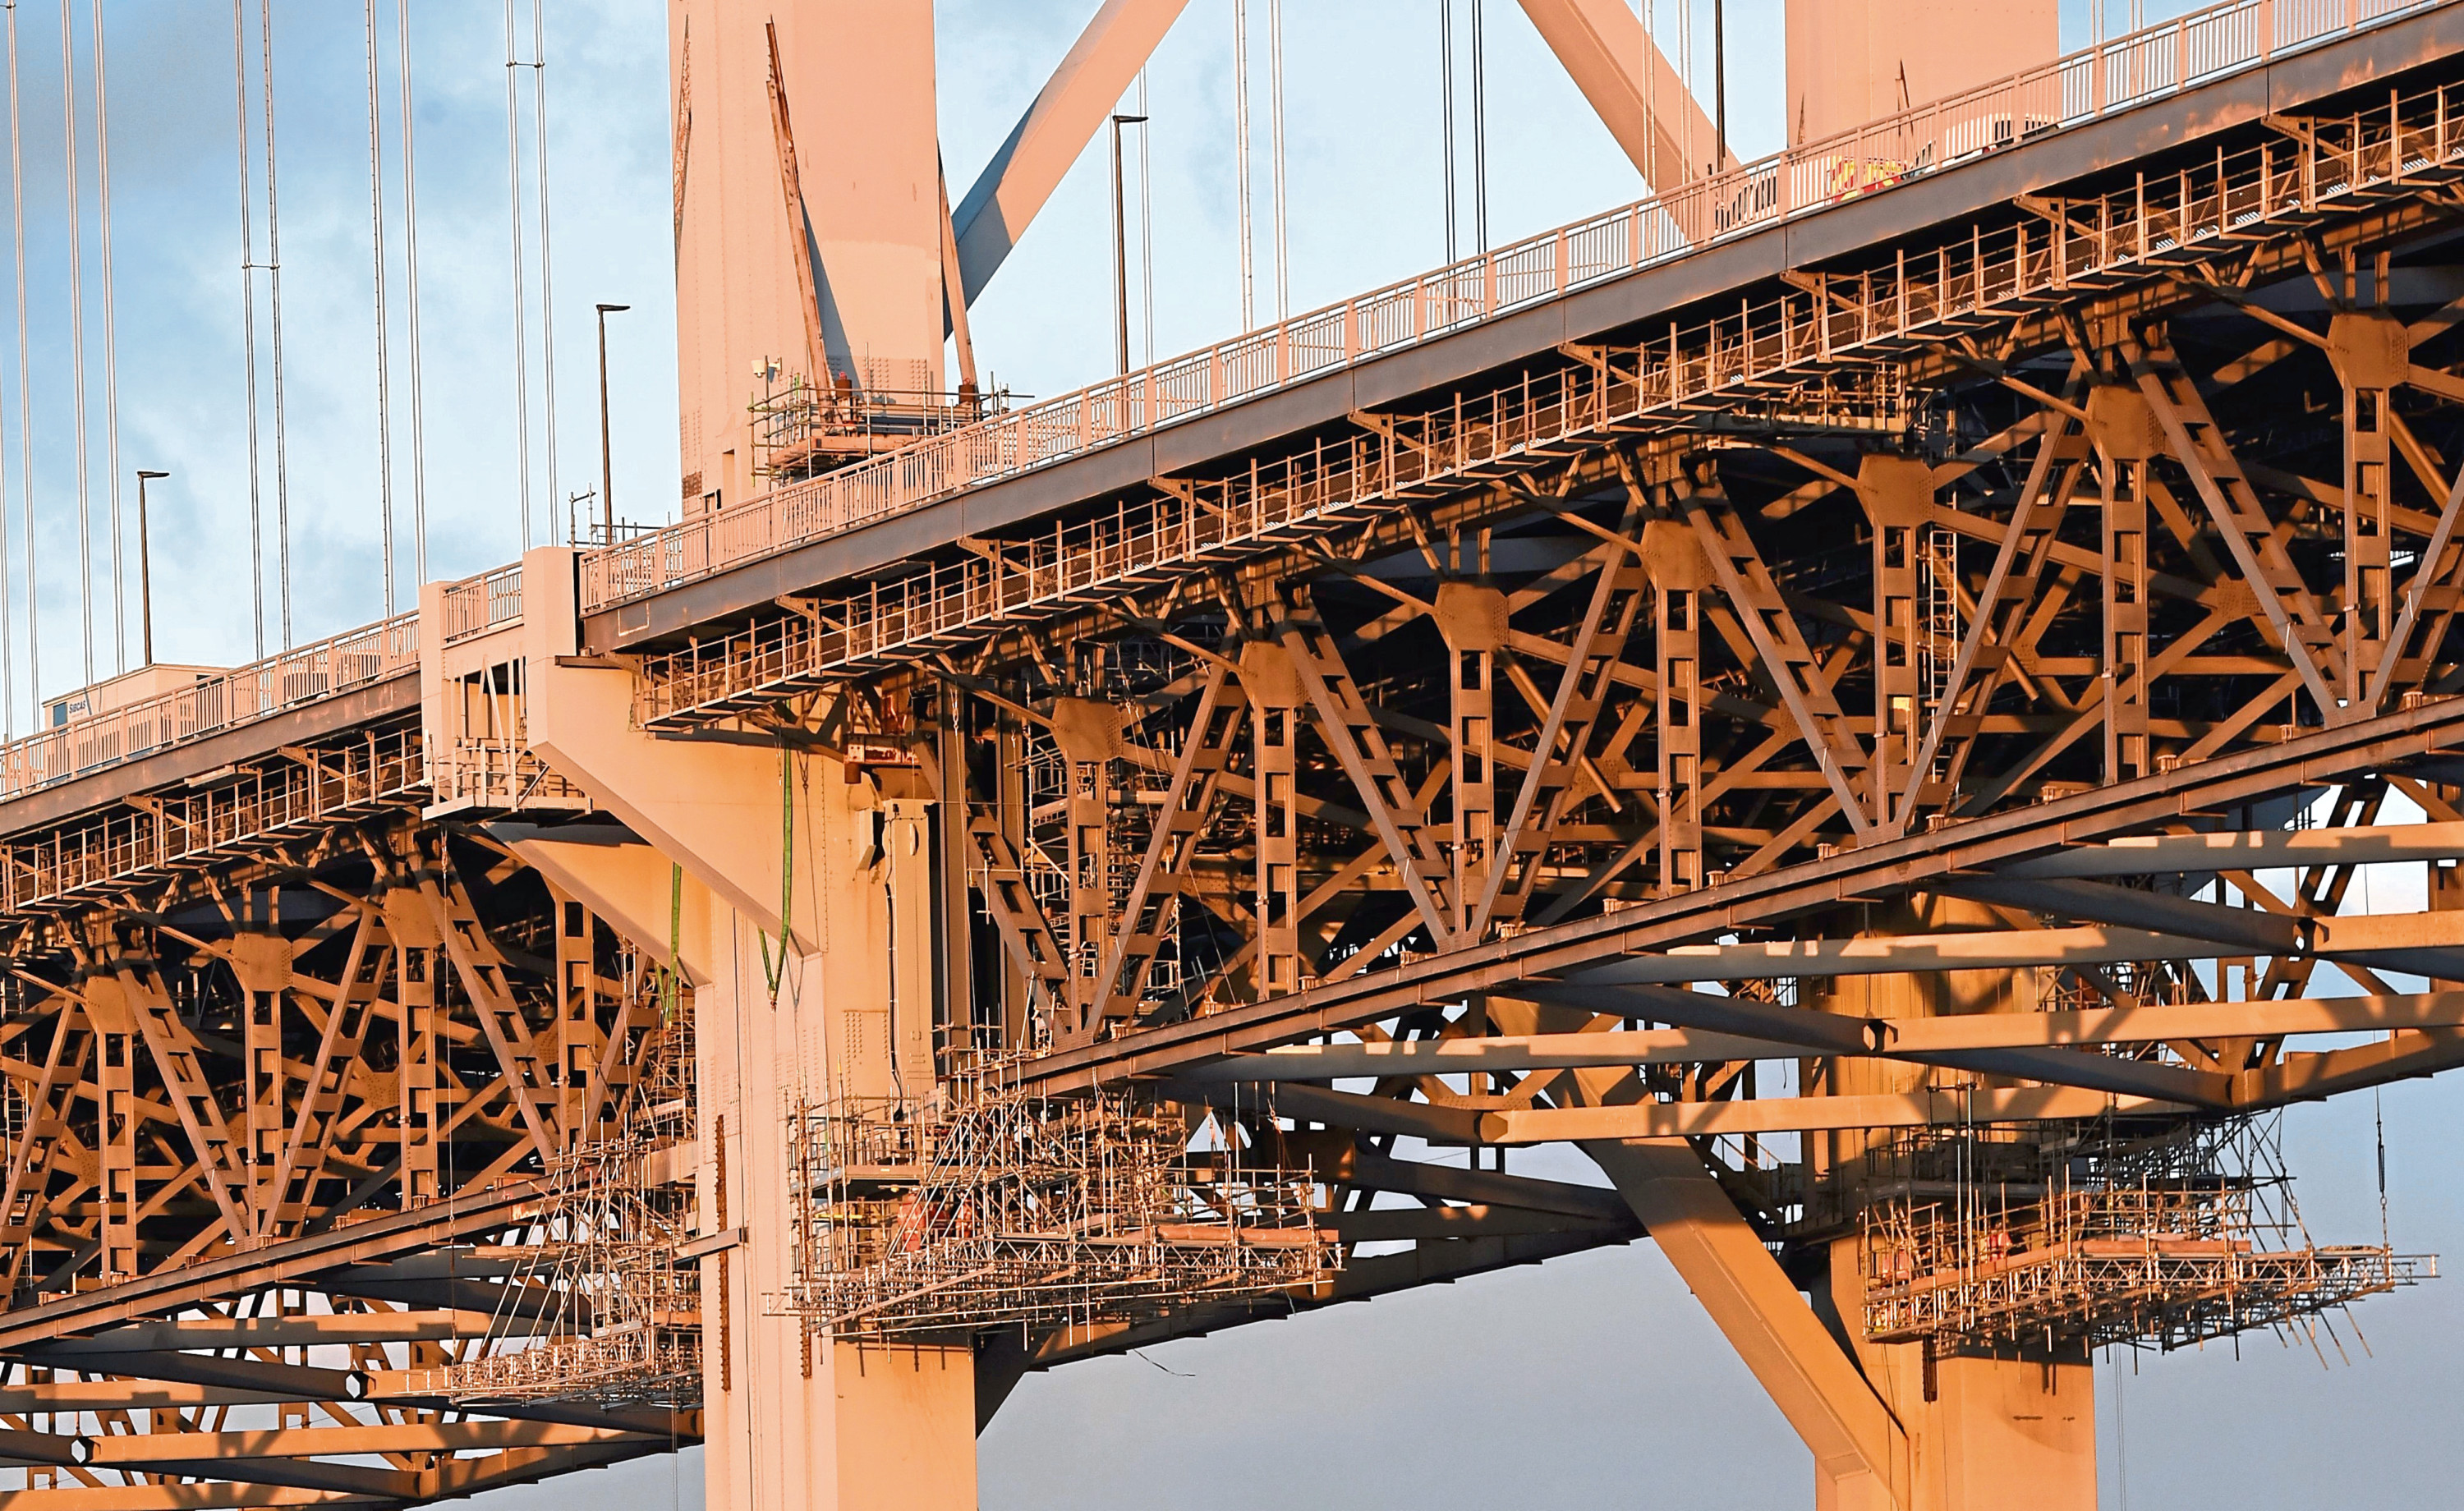 Span Access platforms on the Forth Road Bridge